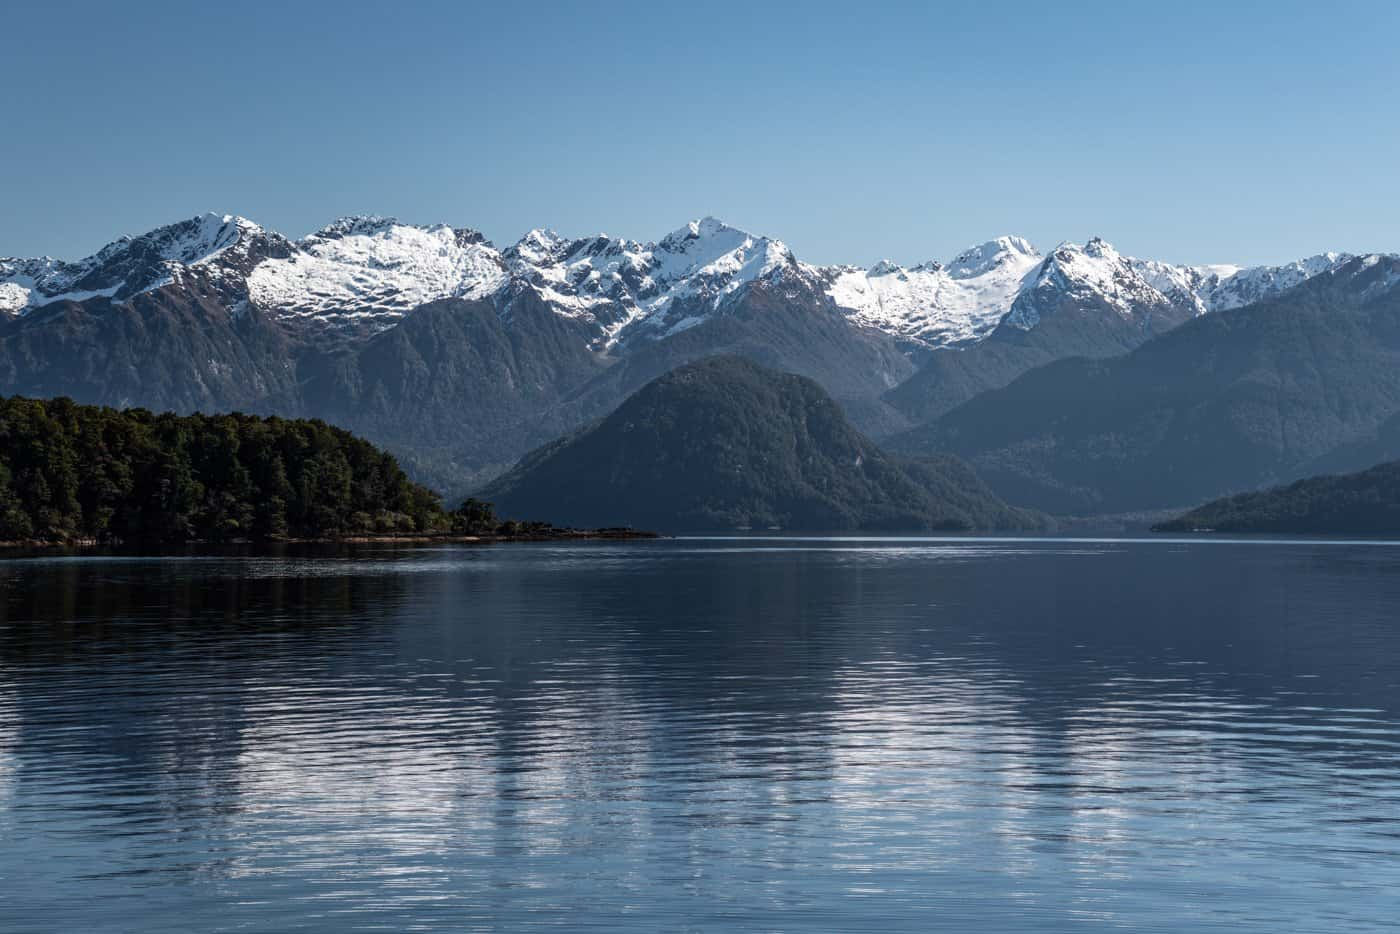 You will arrive to Doubtful Sound via 2 boats and a bus, but every stretch is scenic!